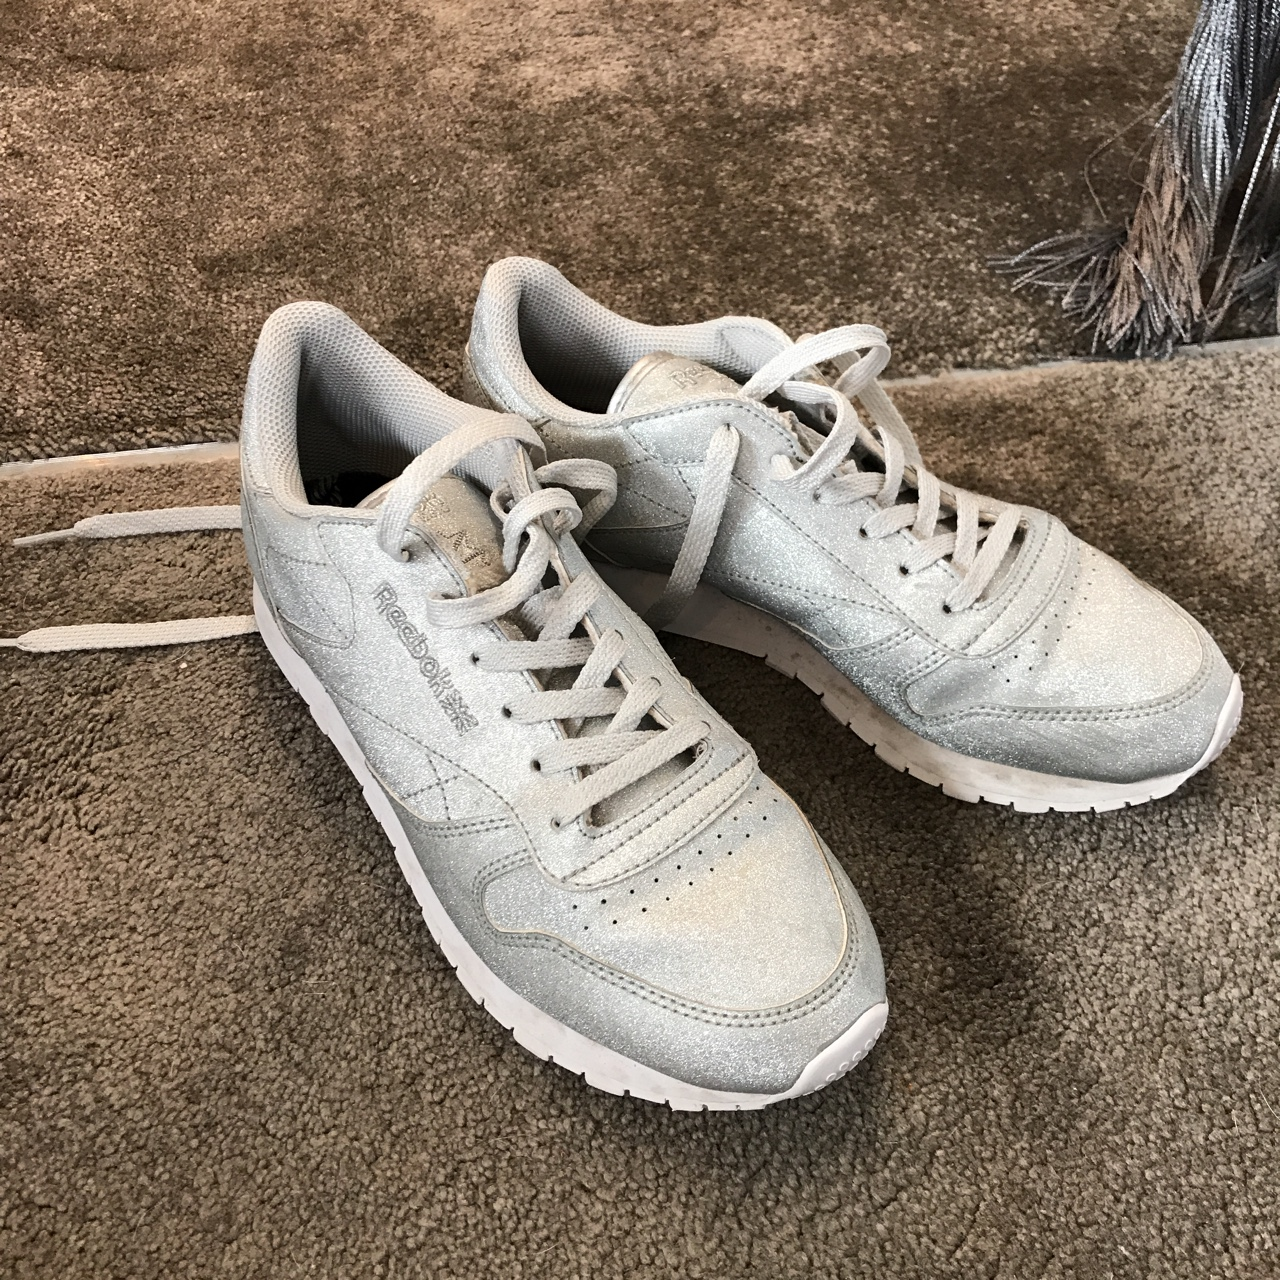 reebok sparkly trainers - 61% OFF